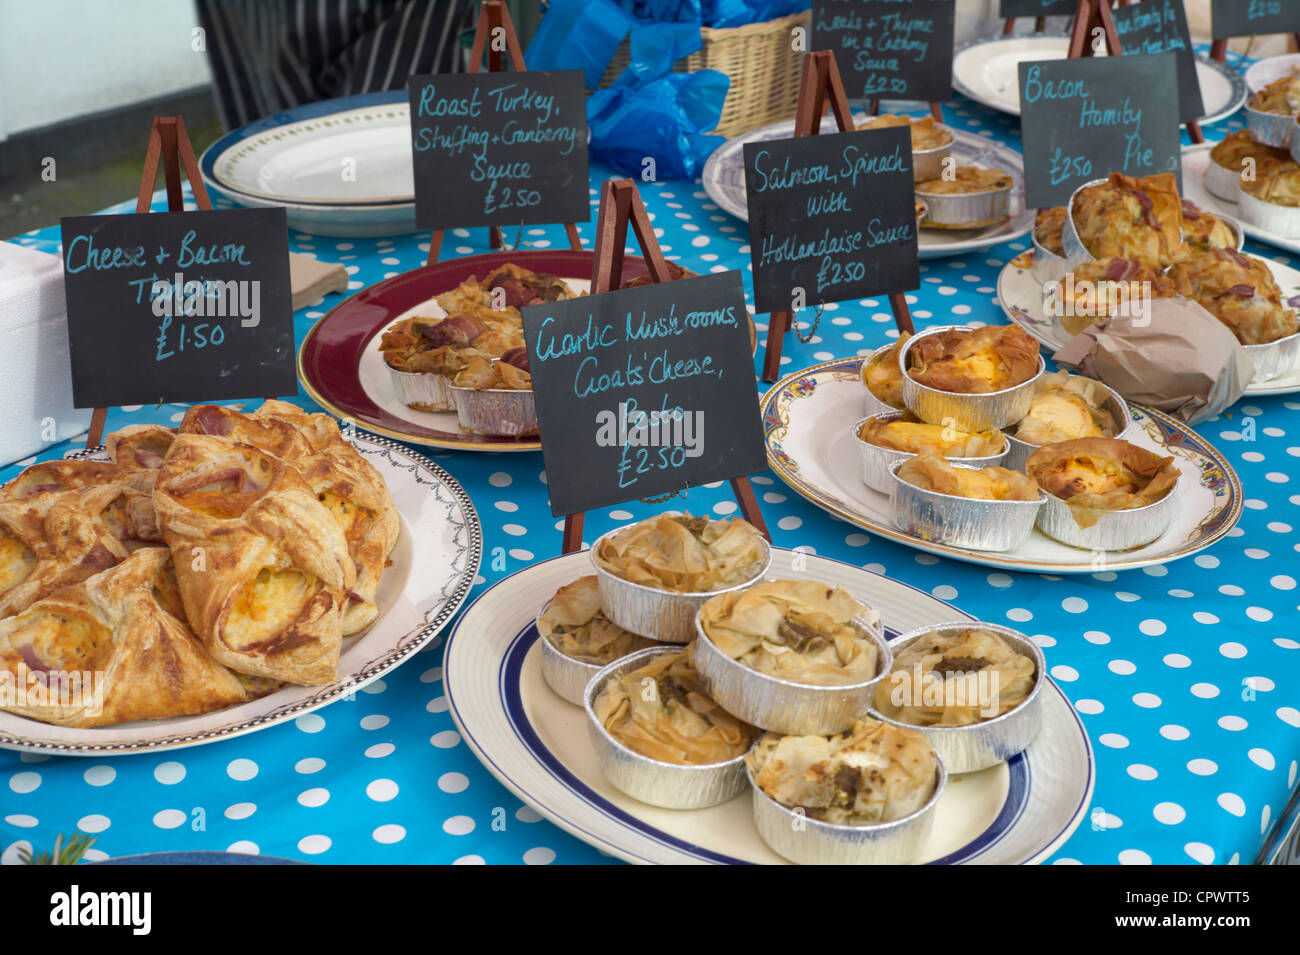 Savory pastries and pies on sale at Bovey Tracey Farmers Market Devon England - Stock Image